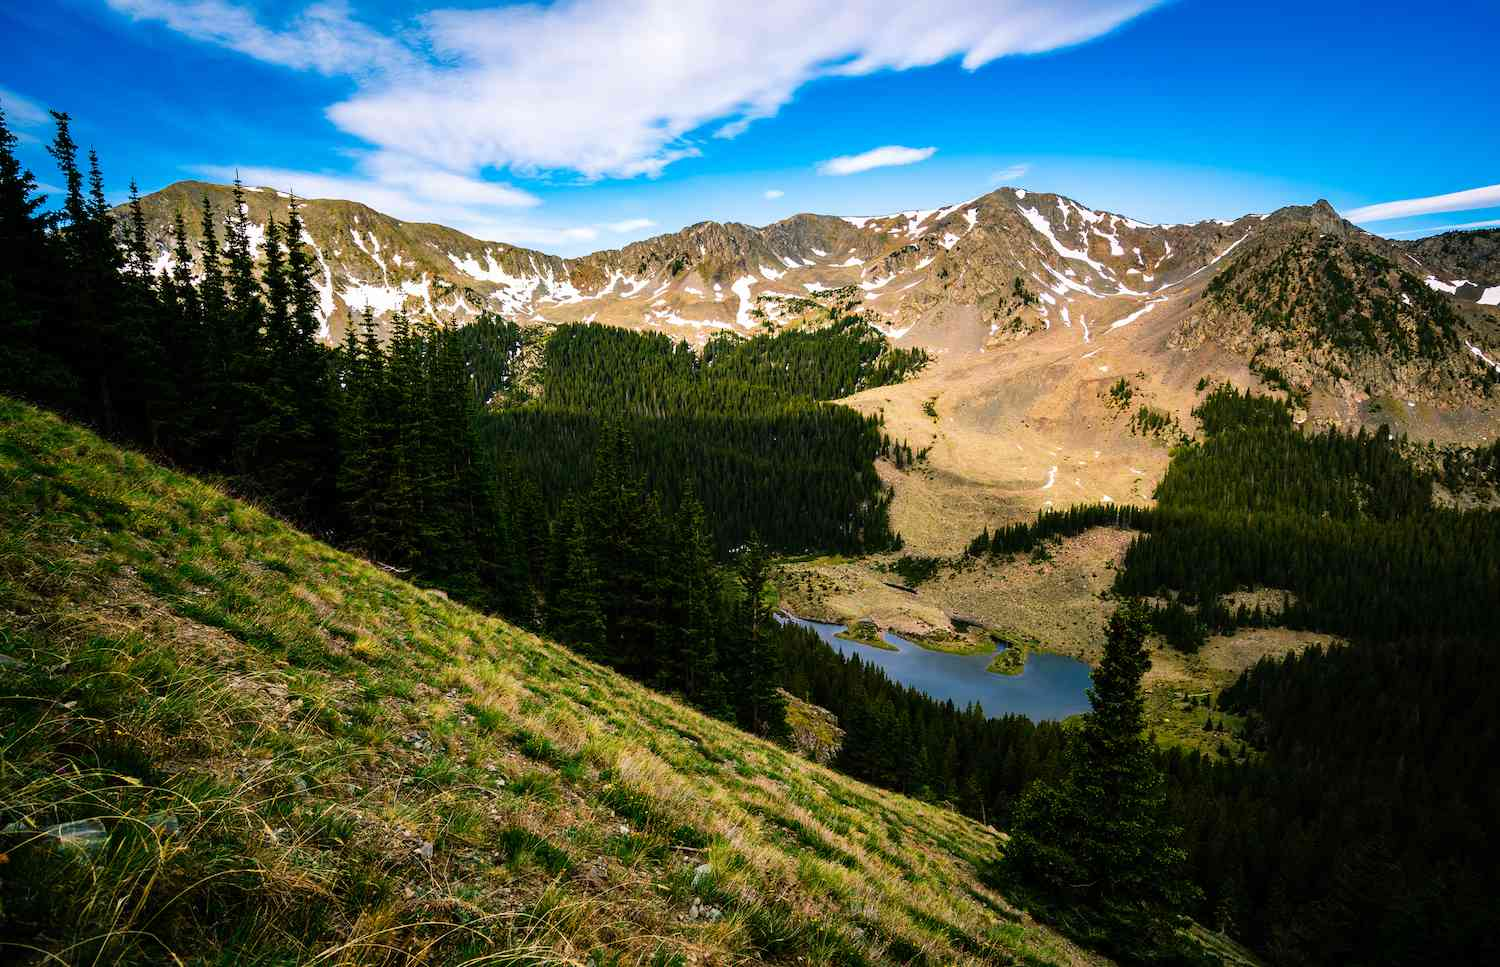 The view of snow-covered mountains and the reflective waters of a lake from Wheeler Peak near Taos, New Mexico